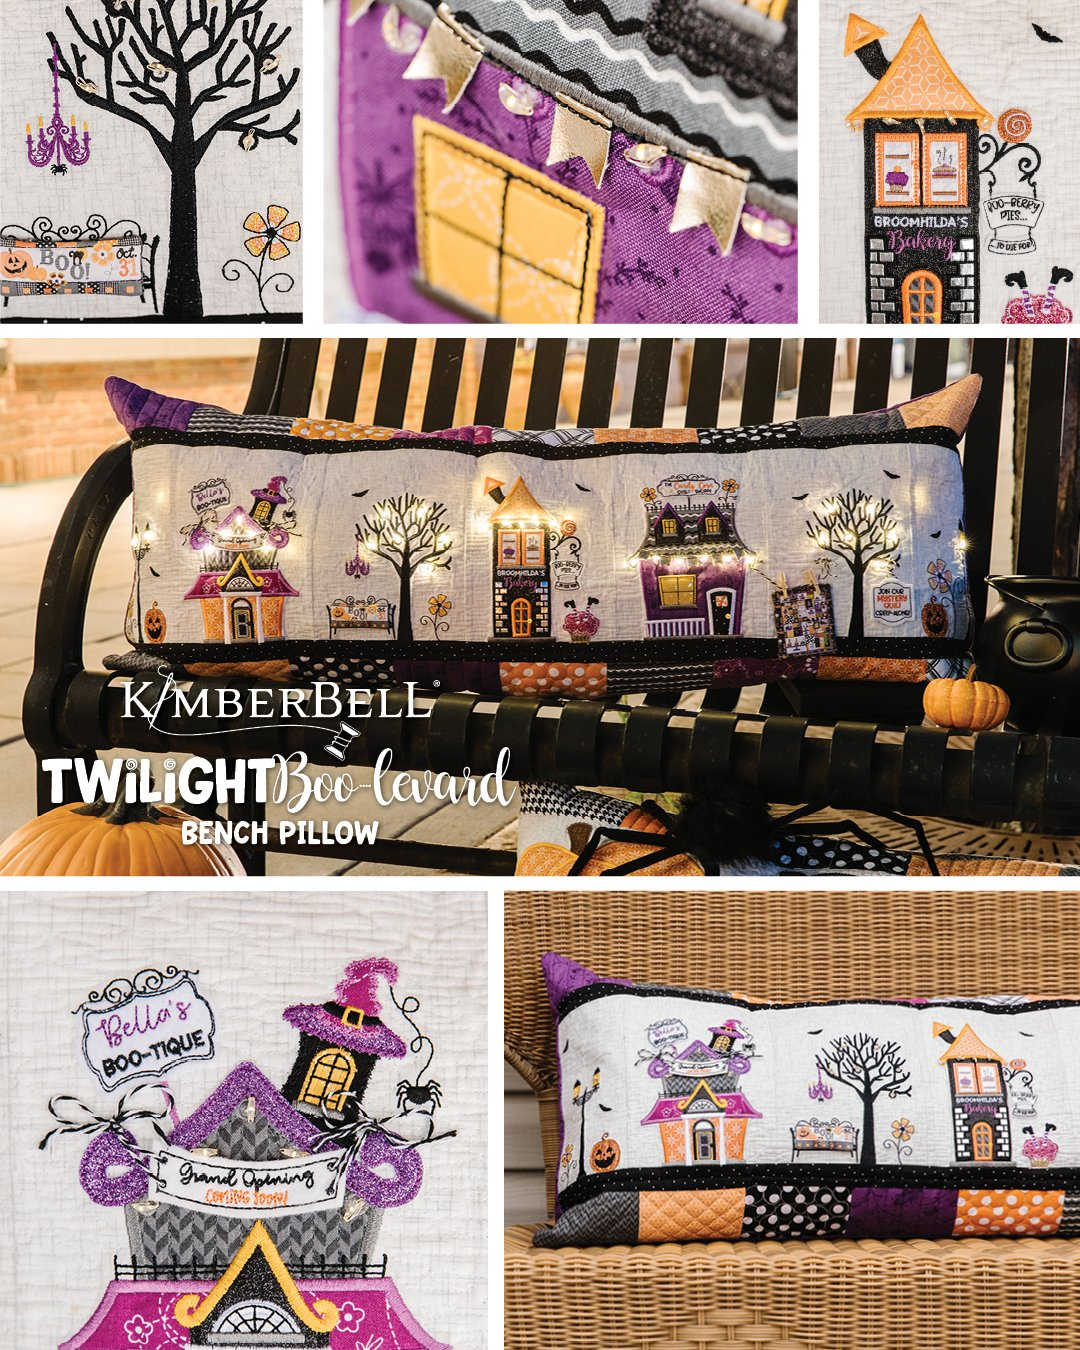 Kimberbell Twilight Boo-Levard Emb CD